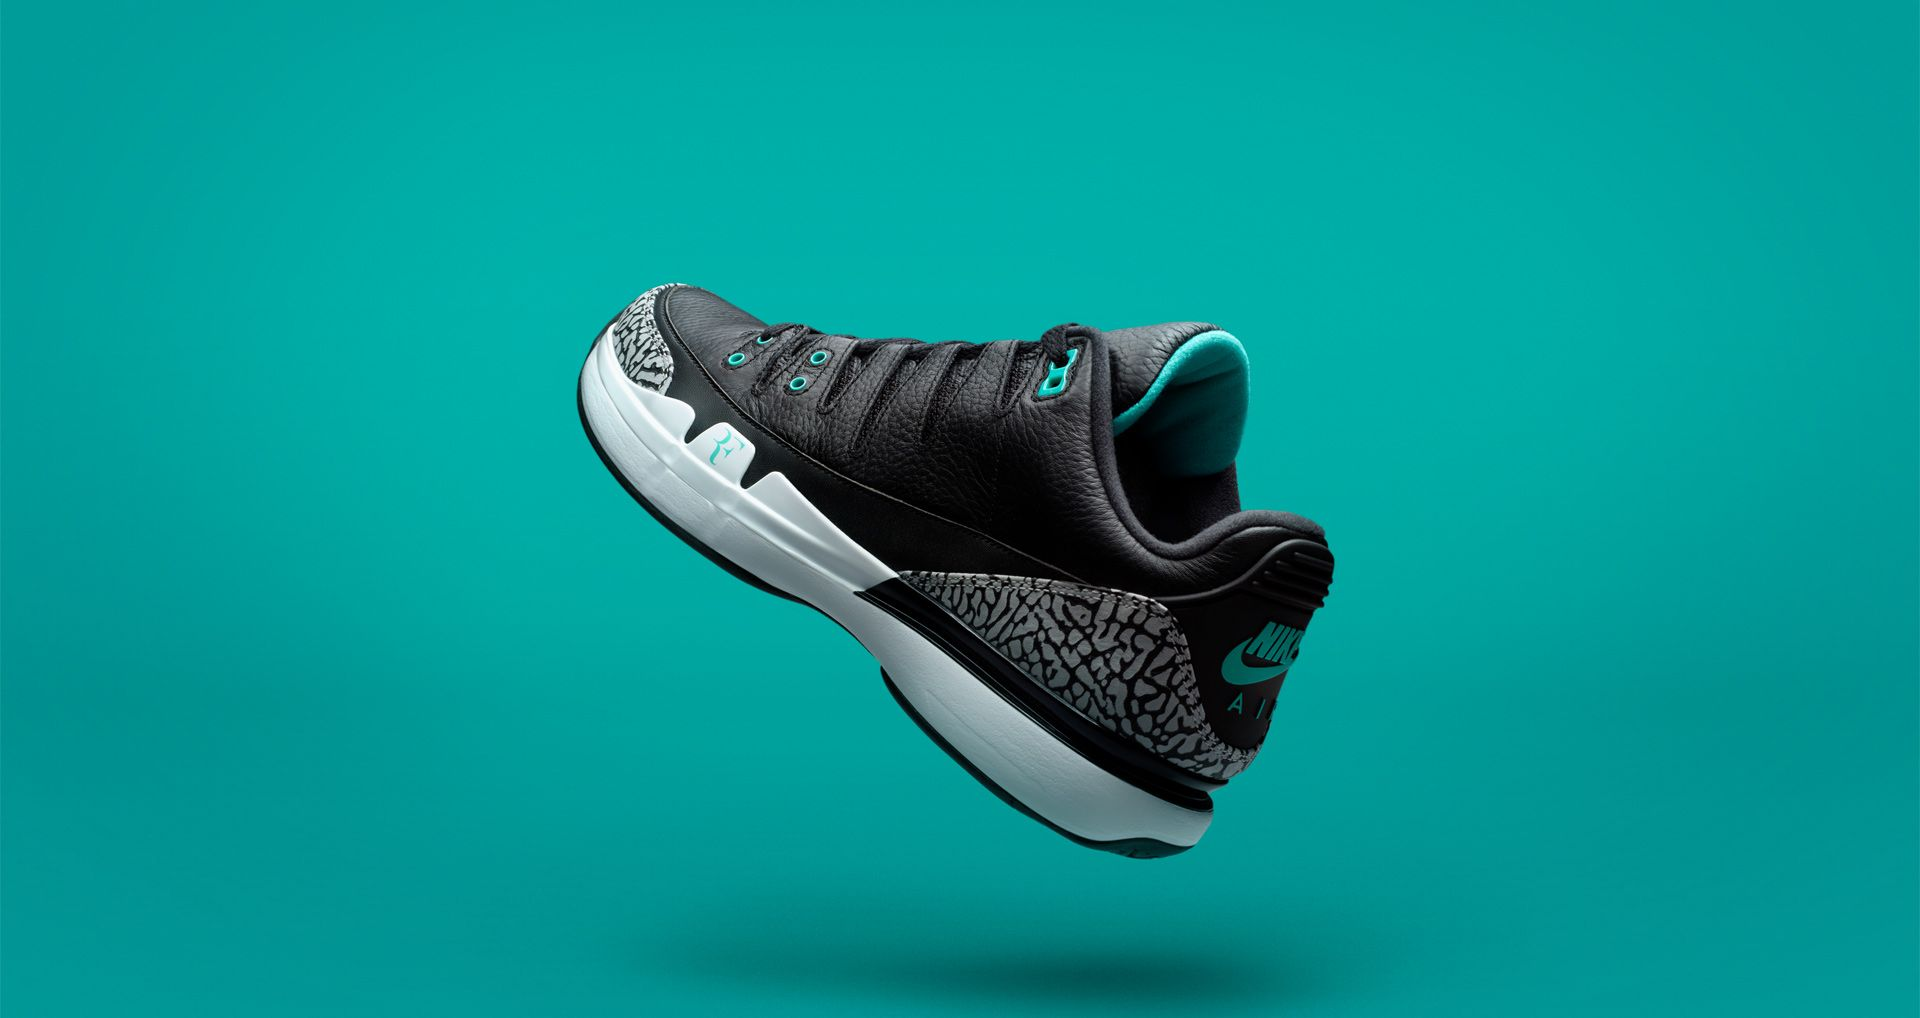 757dfc4add0 Inside The Vault: NikeCourt Zoom Vapor Air Jordan 3. Nike⁠+ Launch GB